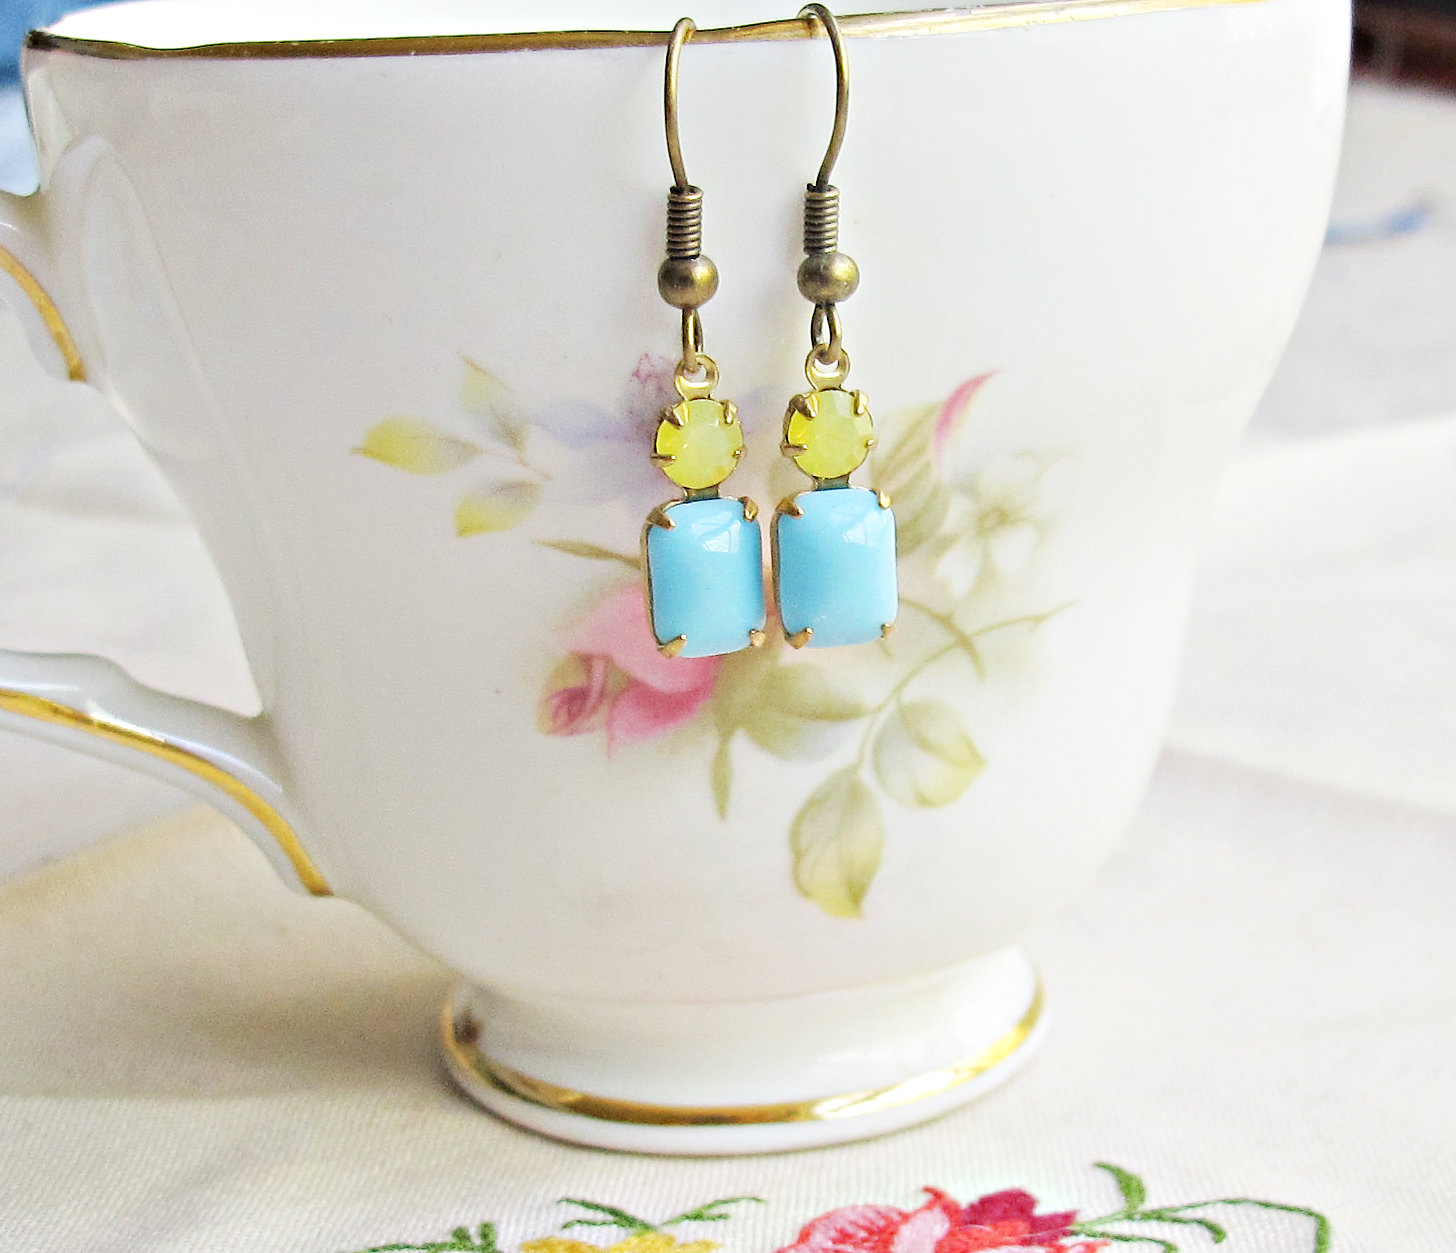 image ibiza earrings lemon yellow lemon zest dusk blue turquoise vintage glass stone brass